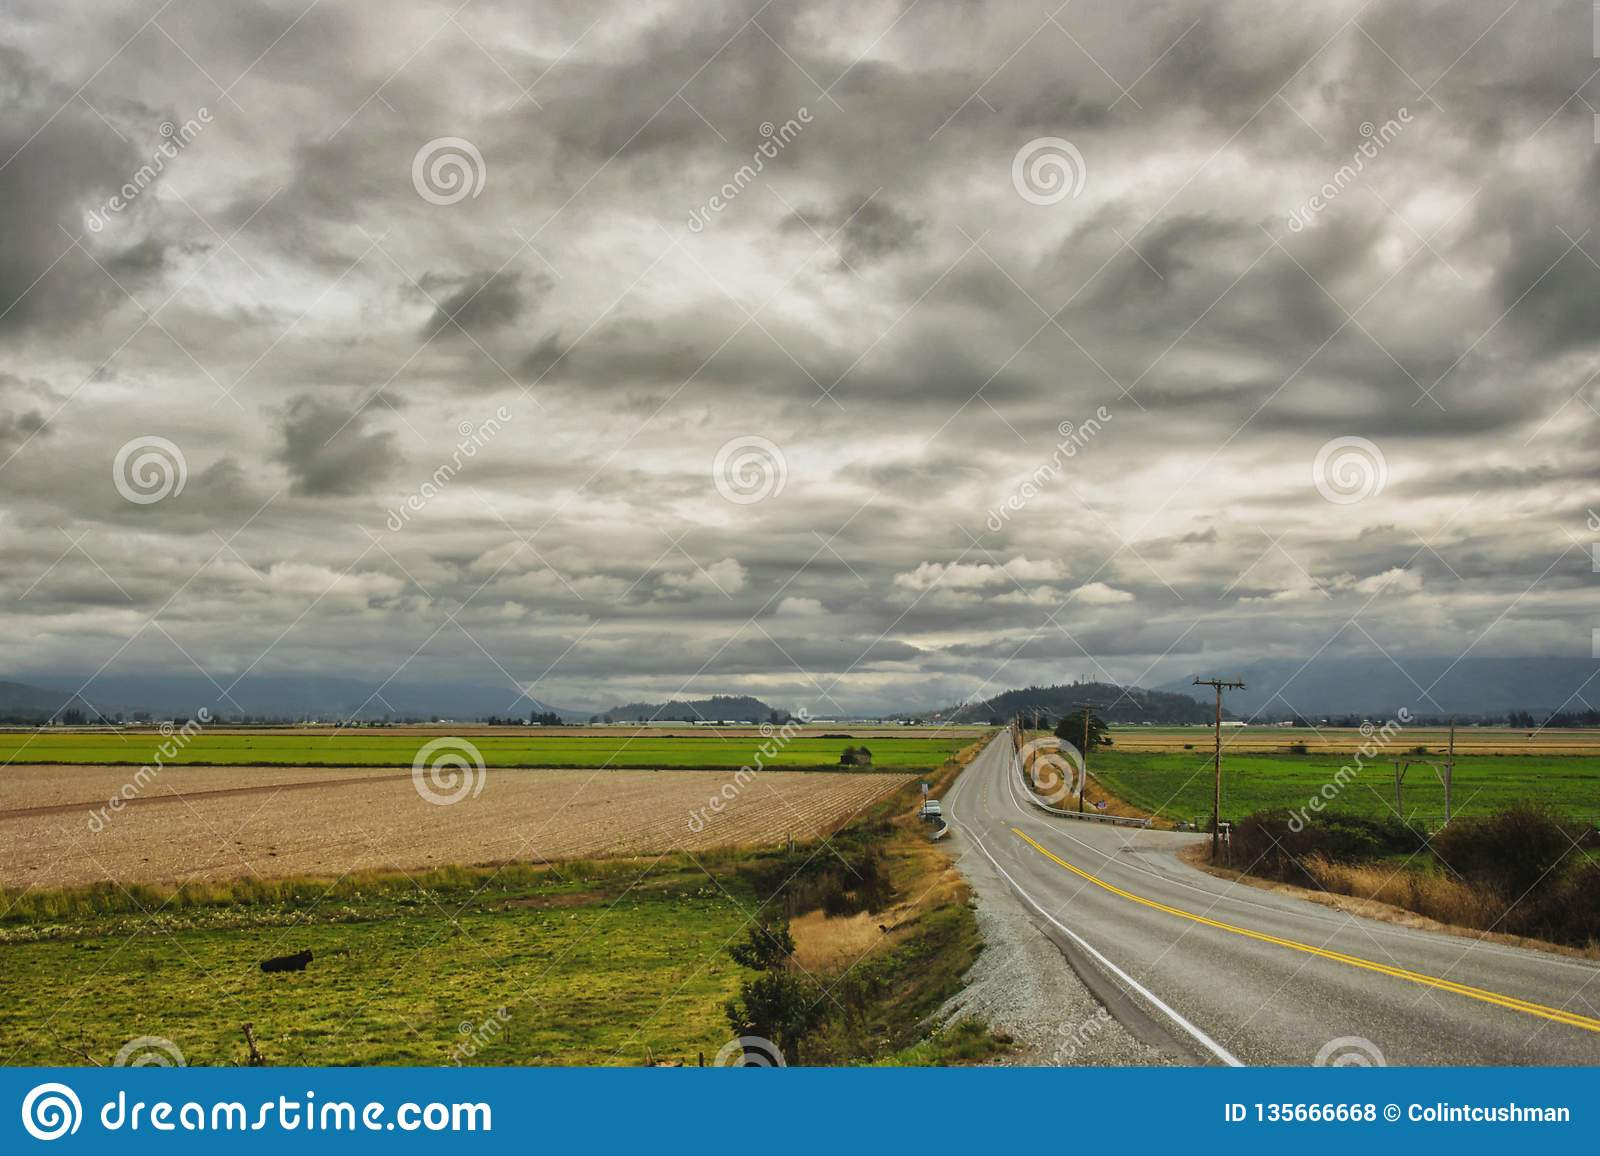 Long road cuts across valley, under looming clouds